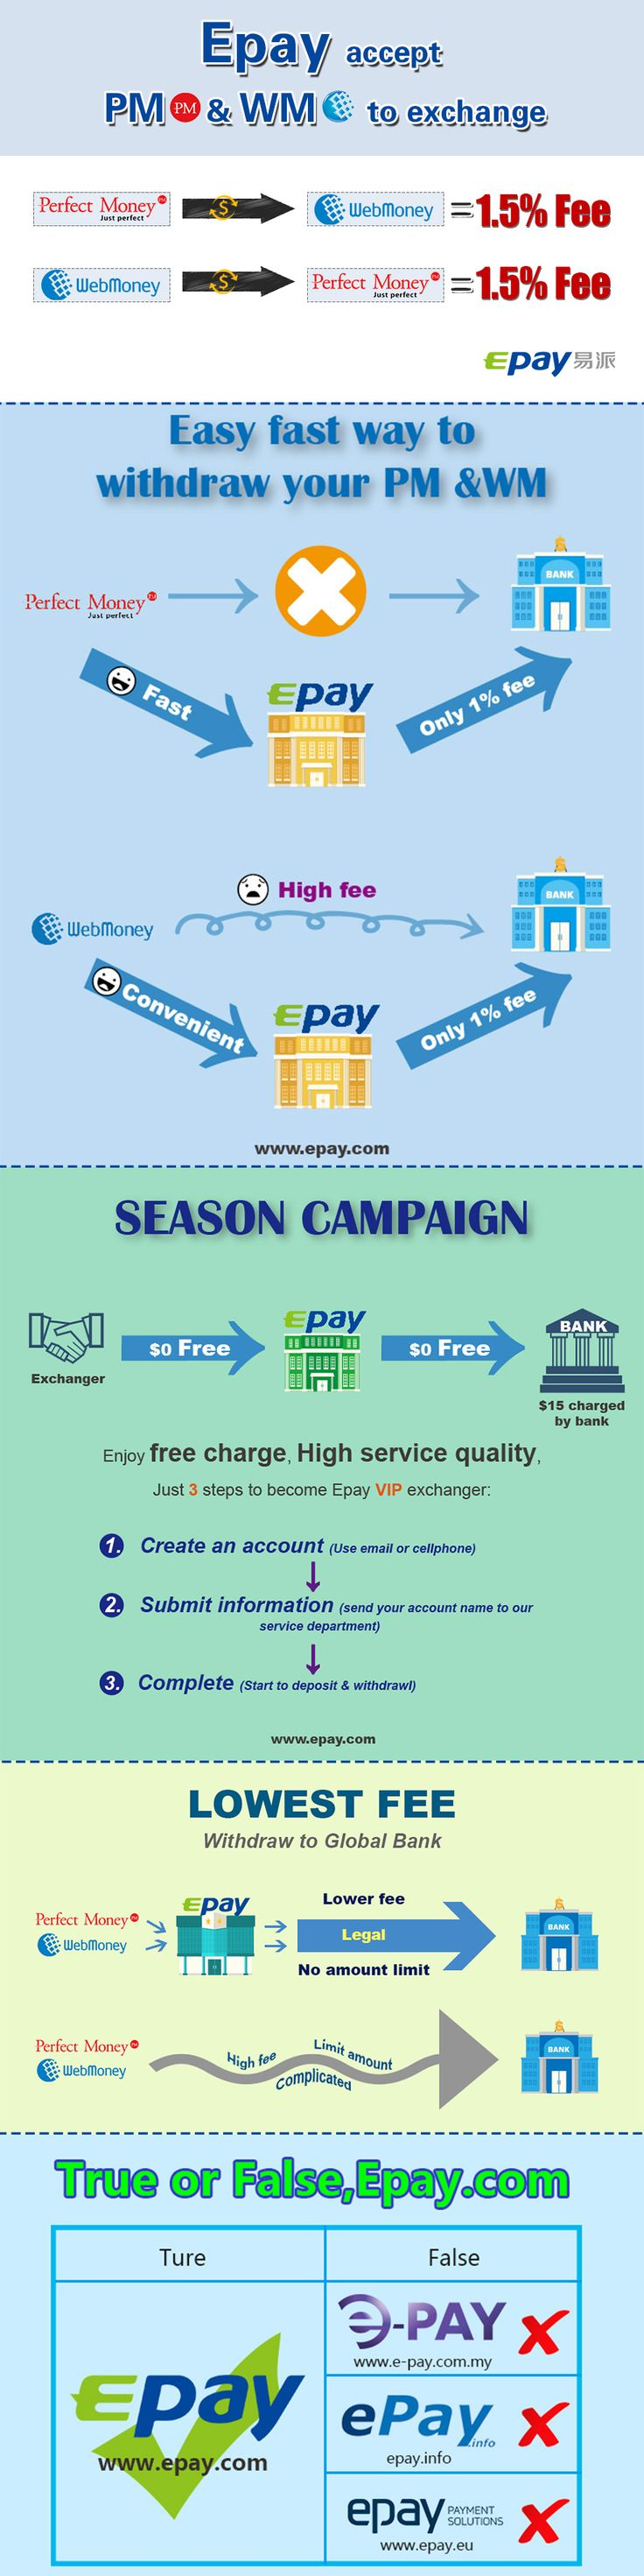 Epay.com-Make online payment, deposit withdrawal send and receive money online secure money transfer, e-currency exchange worldwide. Accept Bank Wire Transfer, E-currency, Western Union, Money Gram, Ria Money Transfer to deposit or withdraw your money 1. Only 1% fee for withdrawal your funds to the bank. 2. Only 1% fee for deposit & withdrawal to Perfect Money, WebMoney.